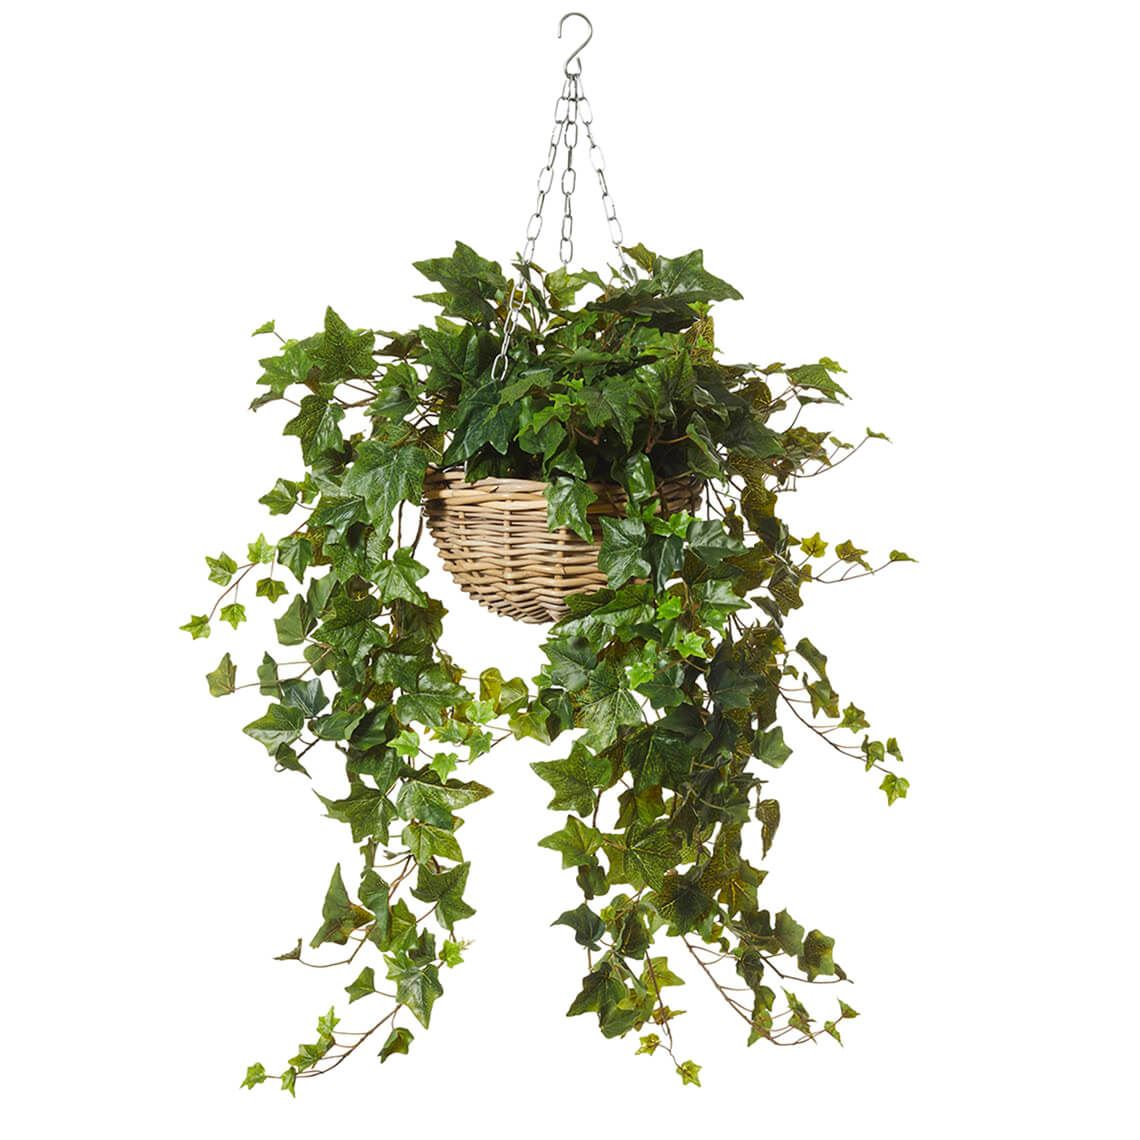 Forest Ivy Bush Artificial Foliage Size W 70cm x D 65cm x H 113cm in Green Plastic/Wire Freedom by Freedom, a Plants for sale on Style Sourcebook